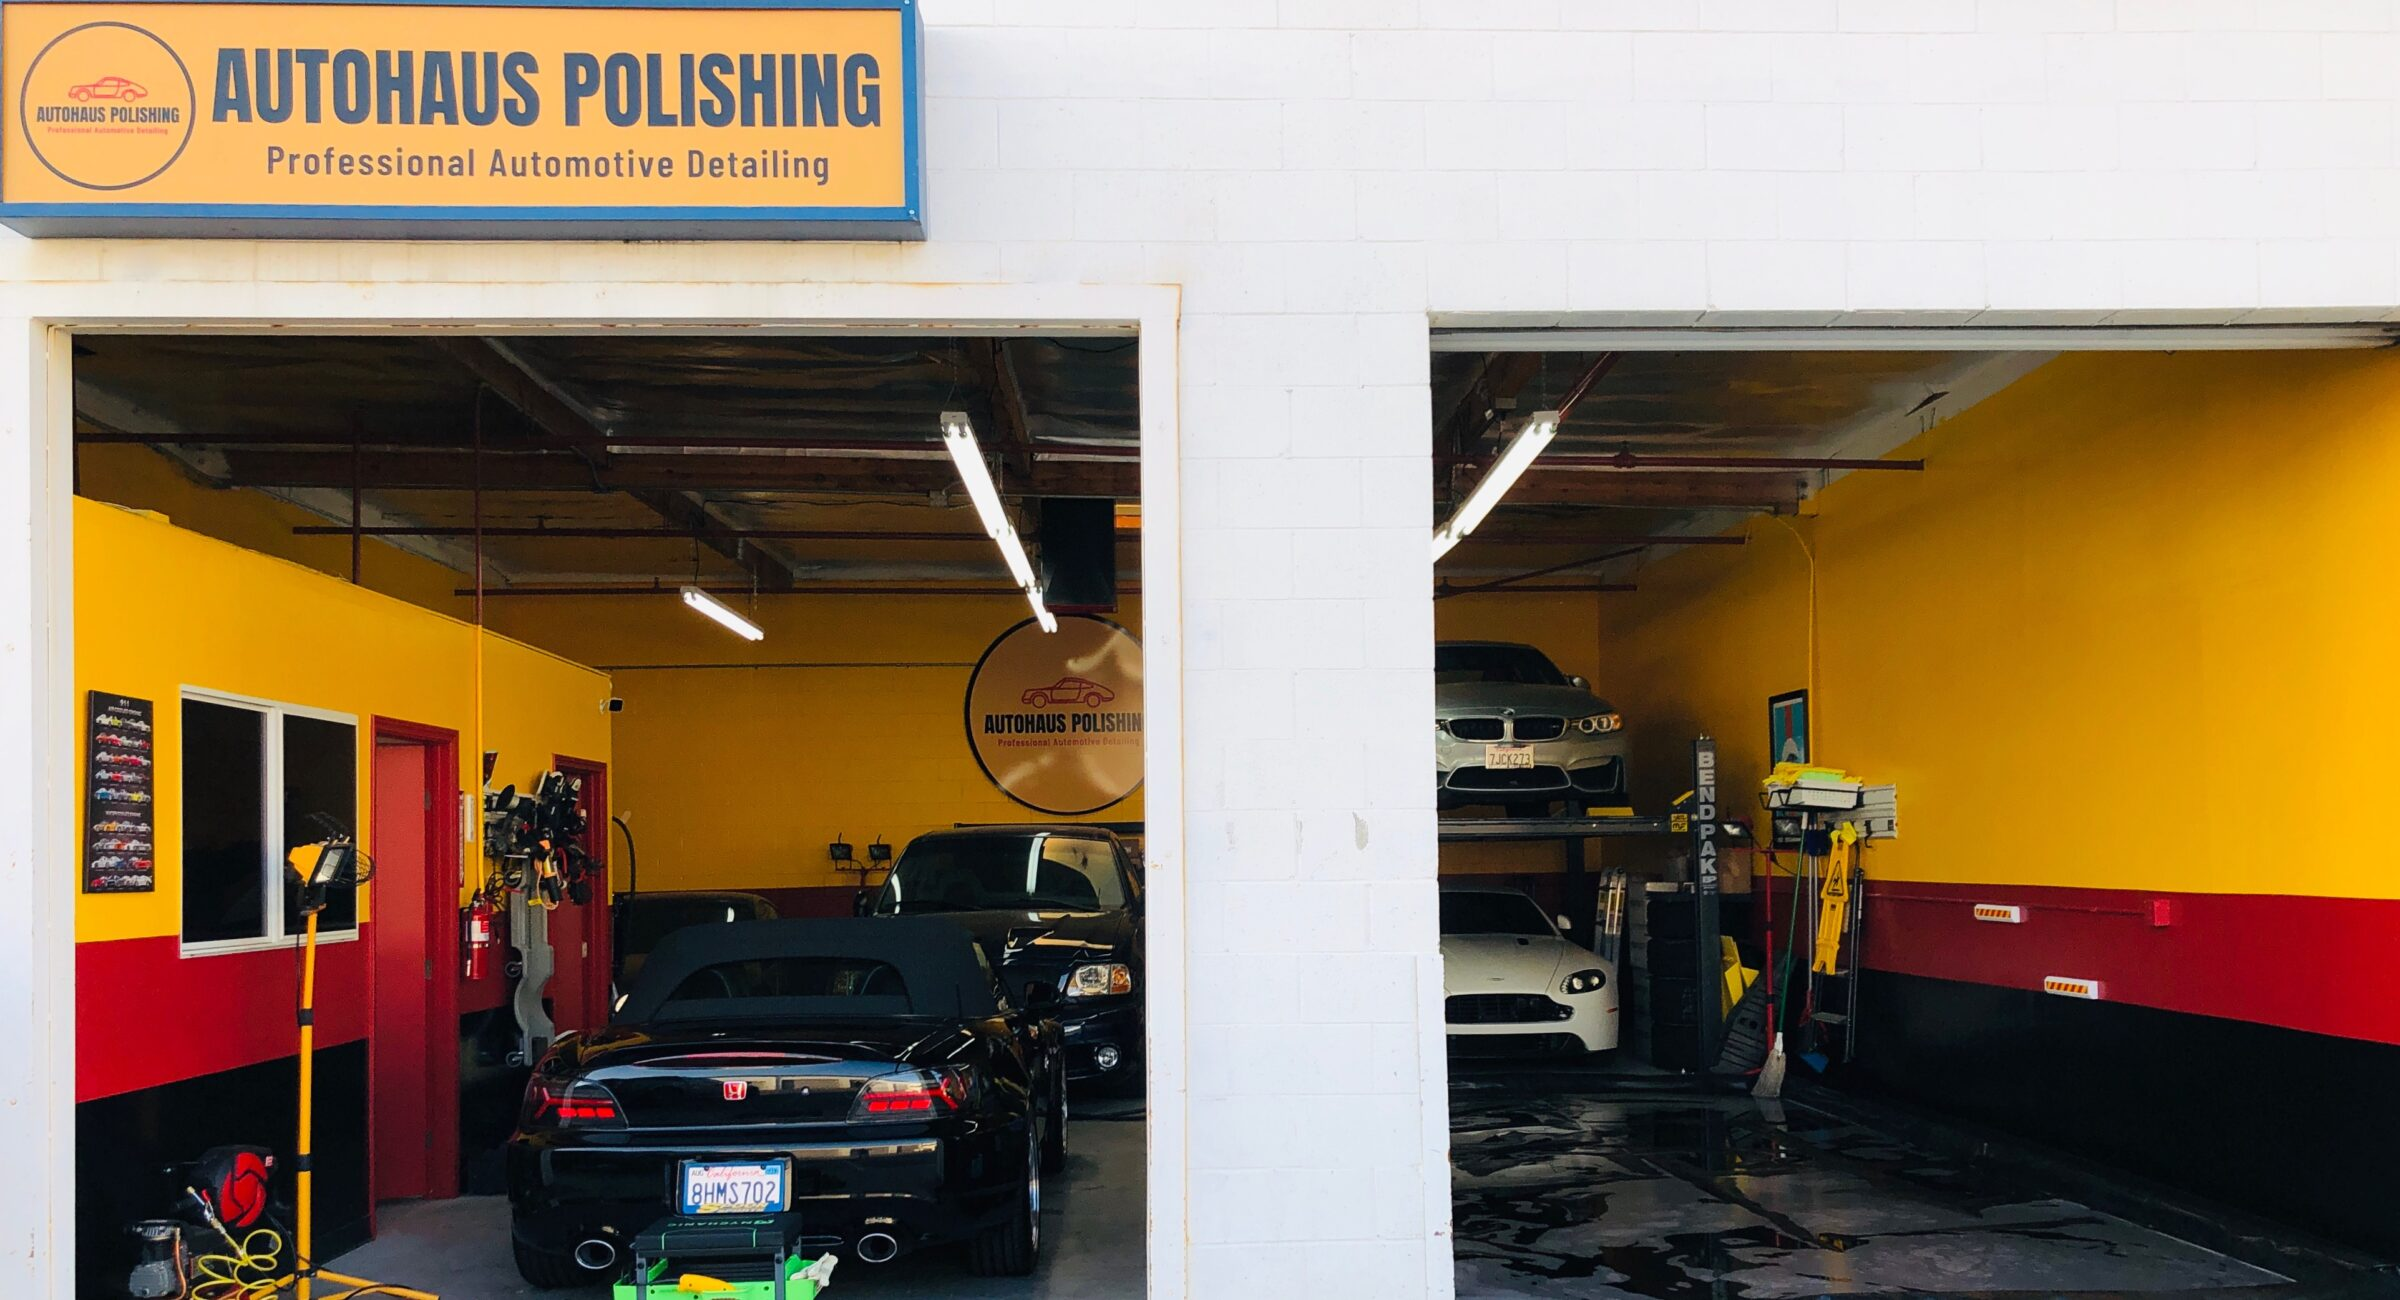 Autohaus Polishing offers car detailing in Santa Clarita